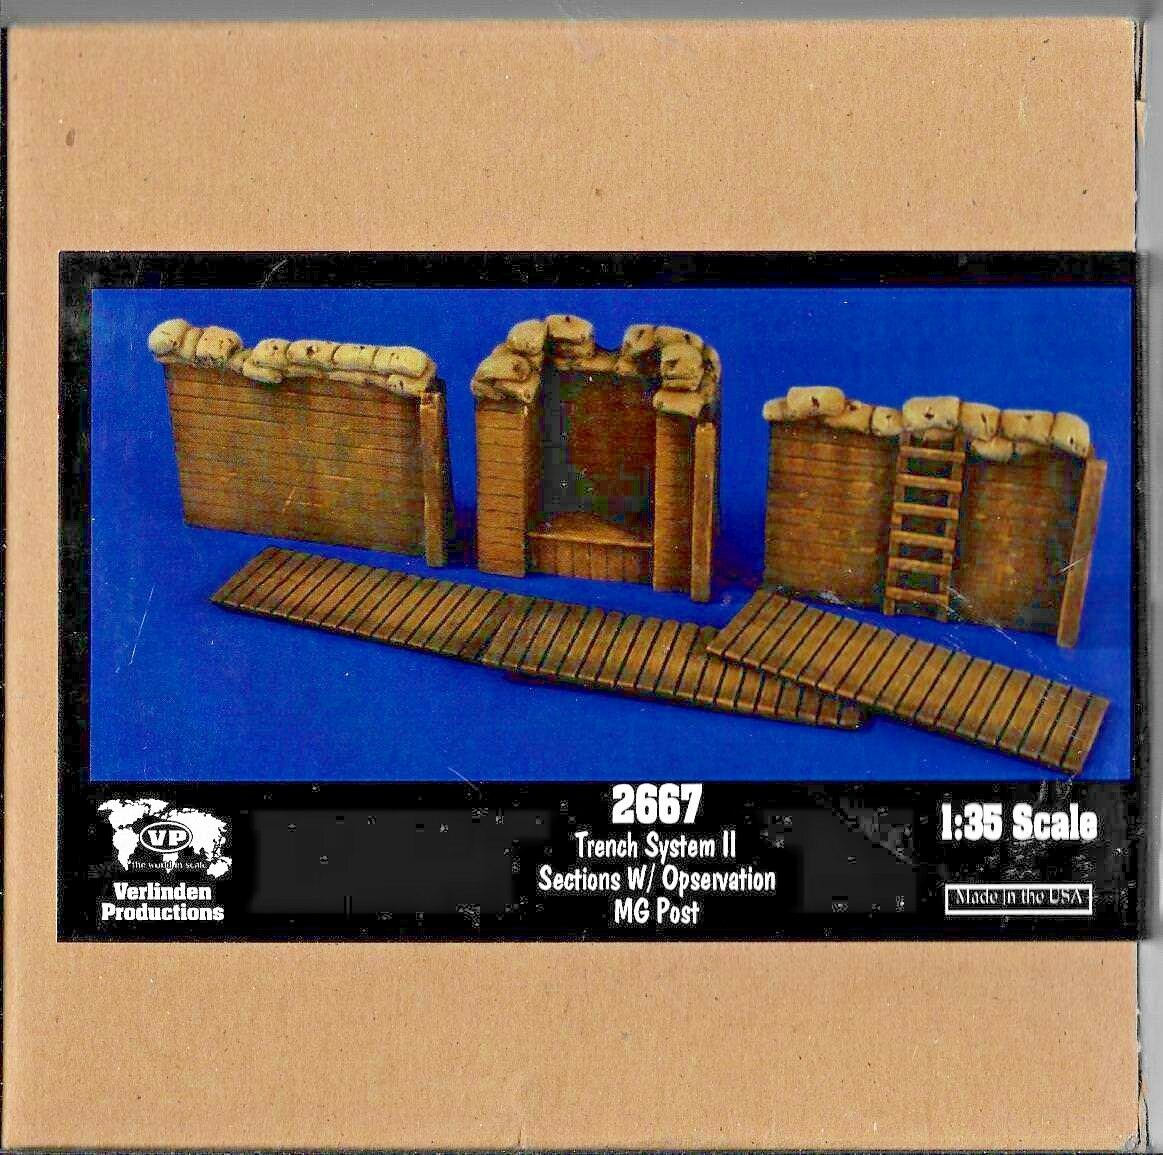 Verlinden Resin Trench System II Sections with Observation MG Post 1 35 2667